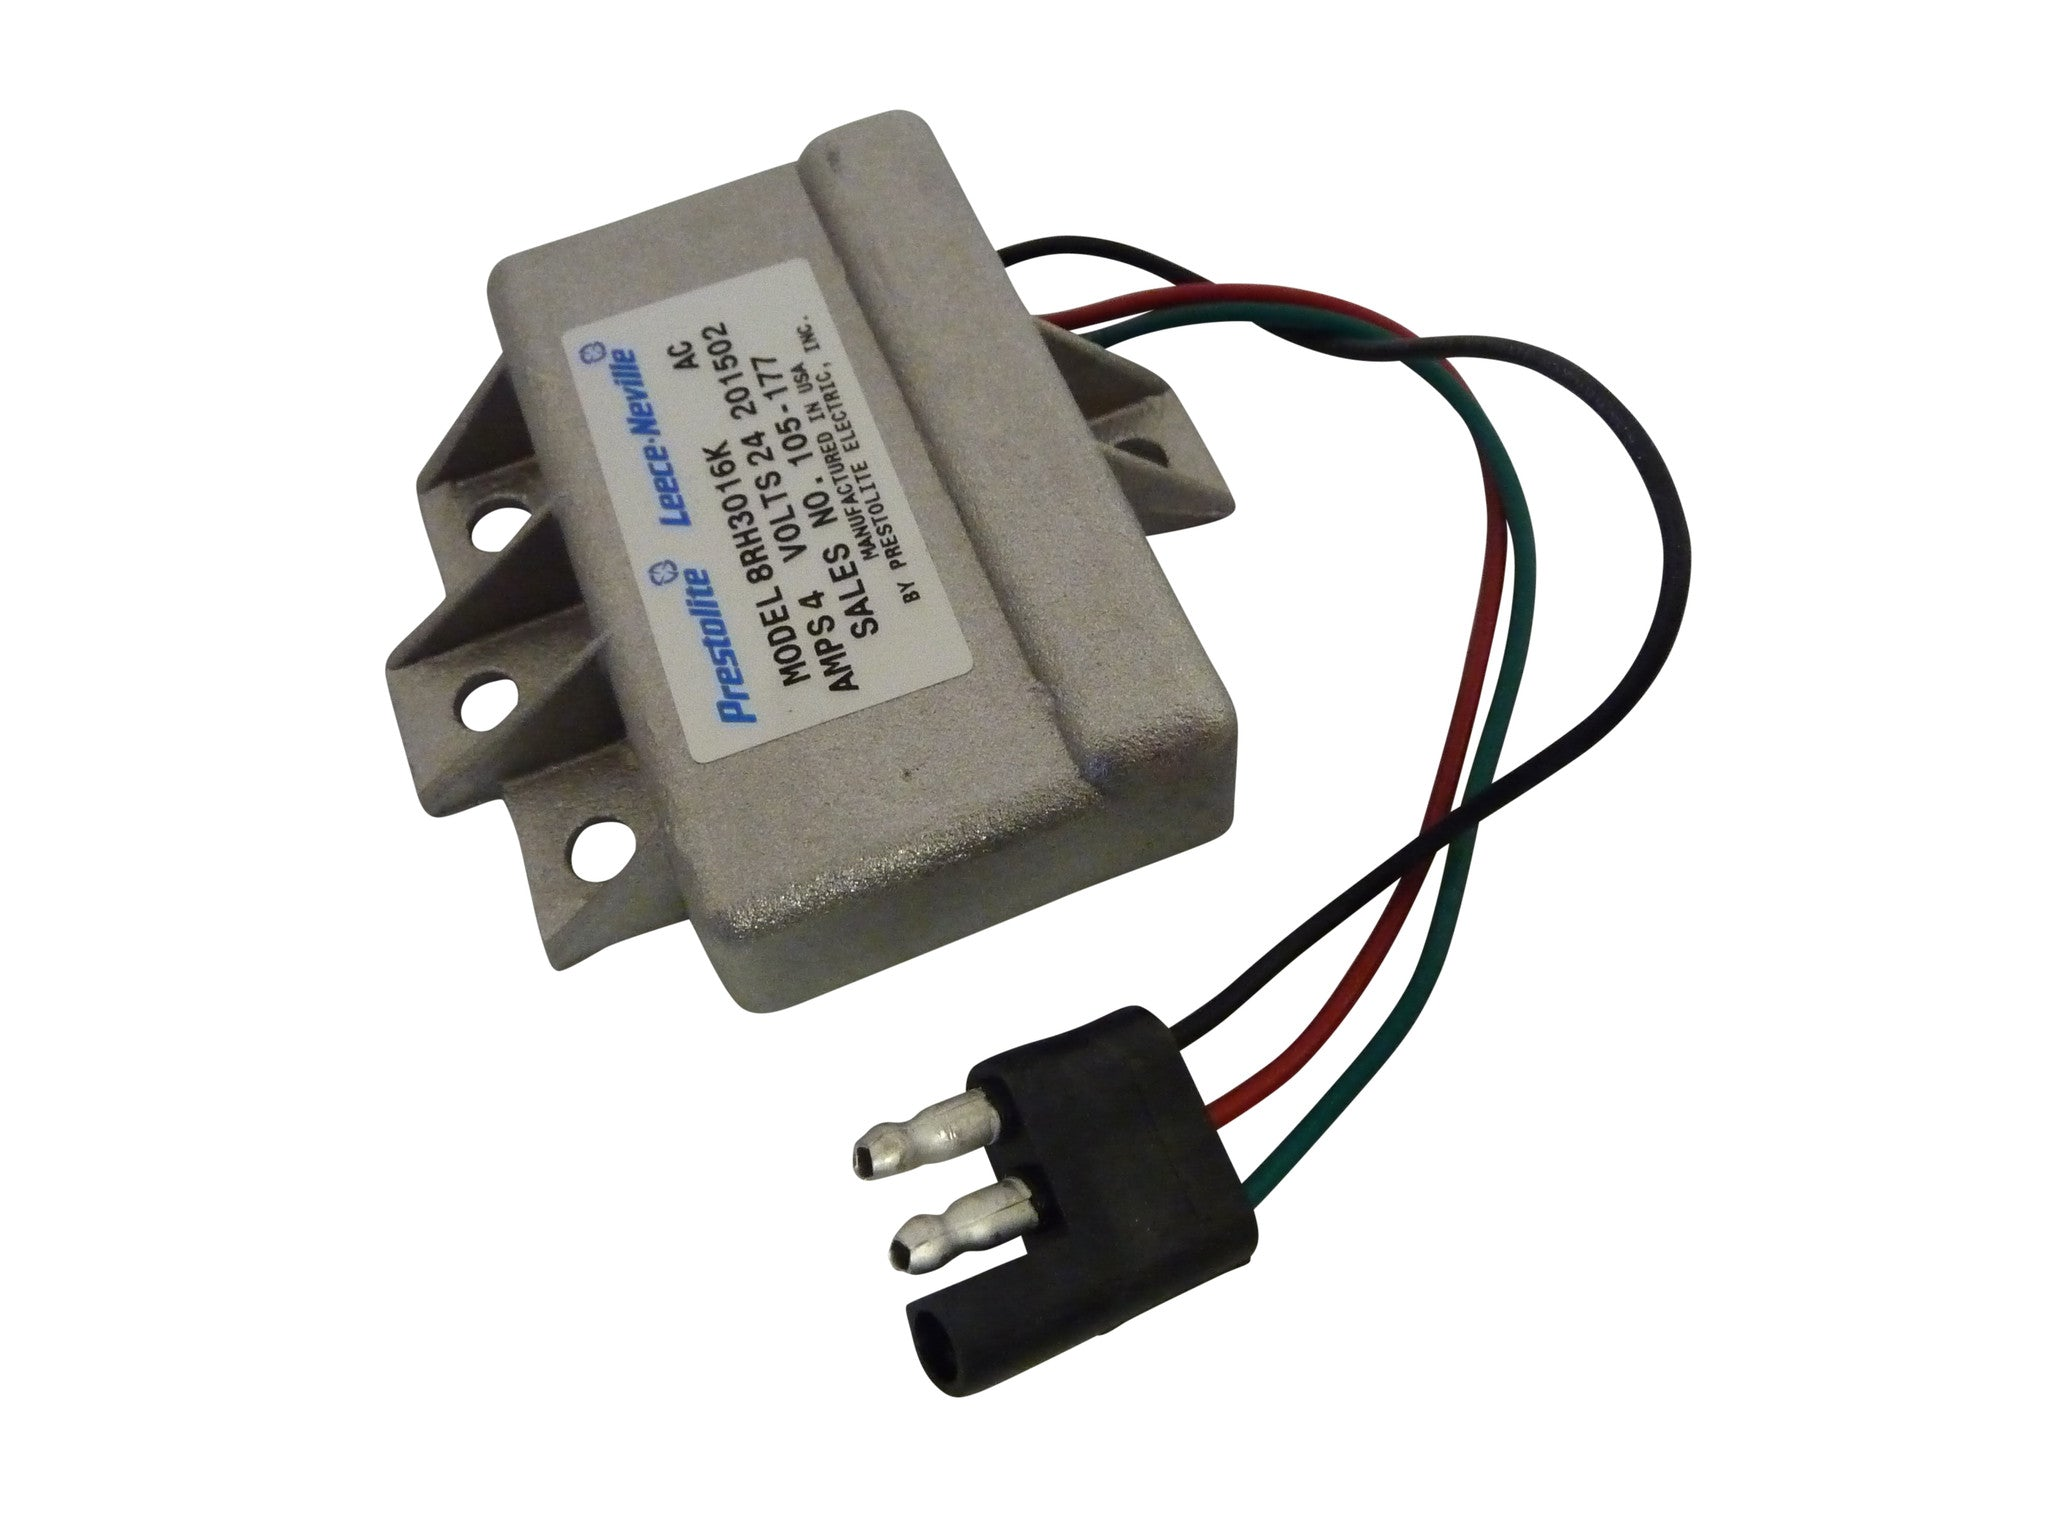 6217 New Electronic Regulator For Delco 10dn 12v One Wire Conversion Alternator Wiring Diagram S Smithcoelectric Com Daily Products 0